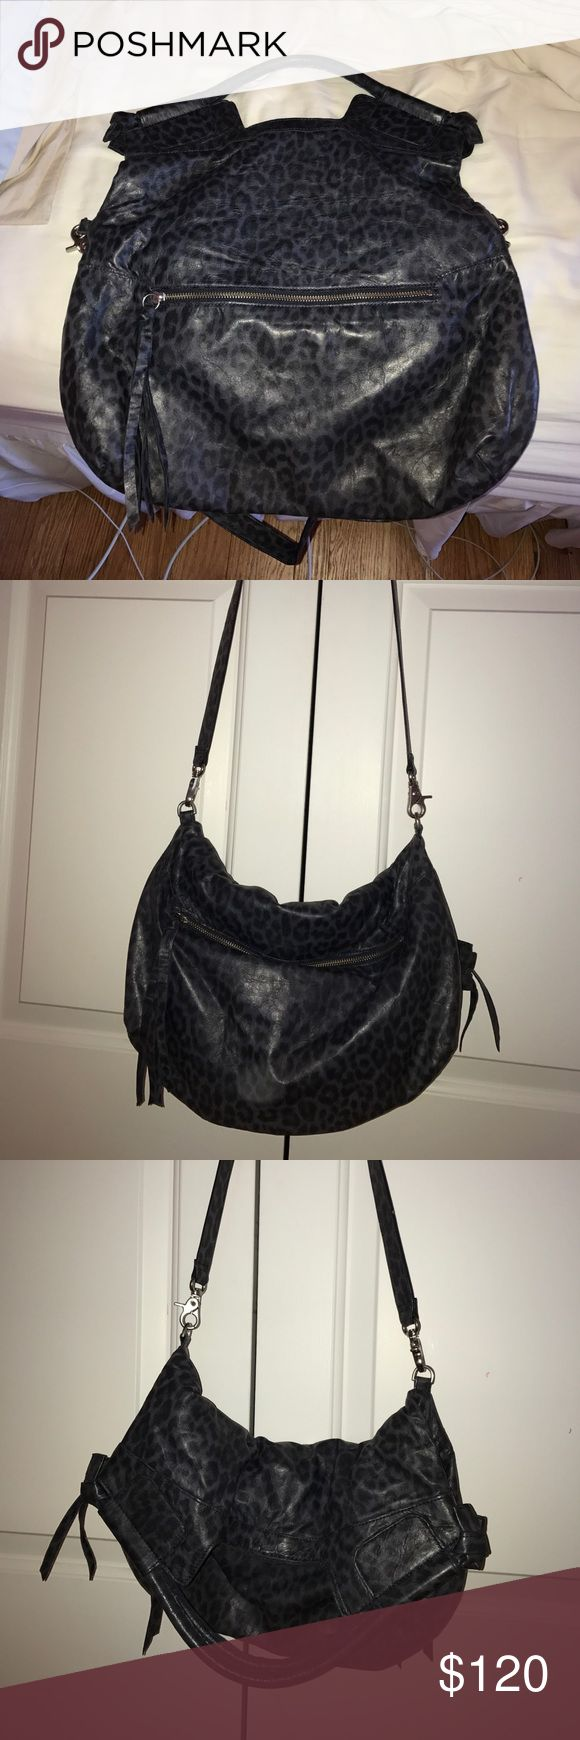 Foley + Corinna animal print bag. ONLY USED ONCE Large navy blue and black animal print bag. Can be worn with long strap or folds over to make it smaller and can carry with hand. Zipper on each side of bag. Can take strap off bag. Foley + Corinna Bags